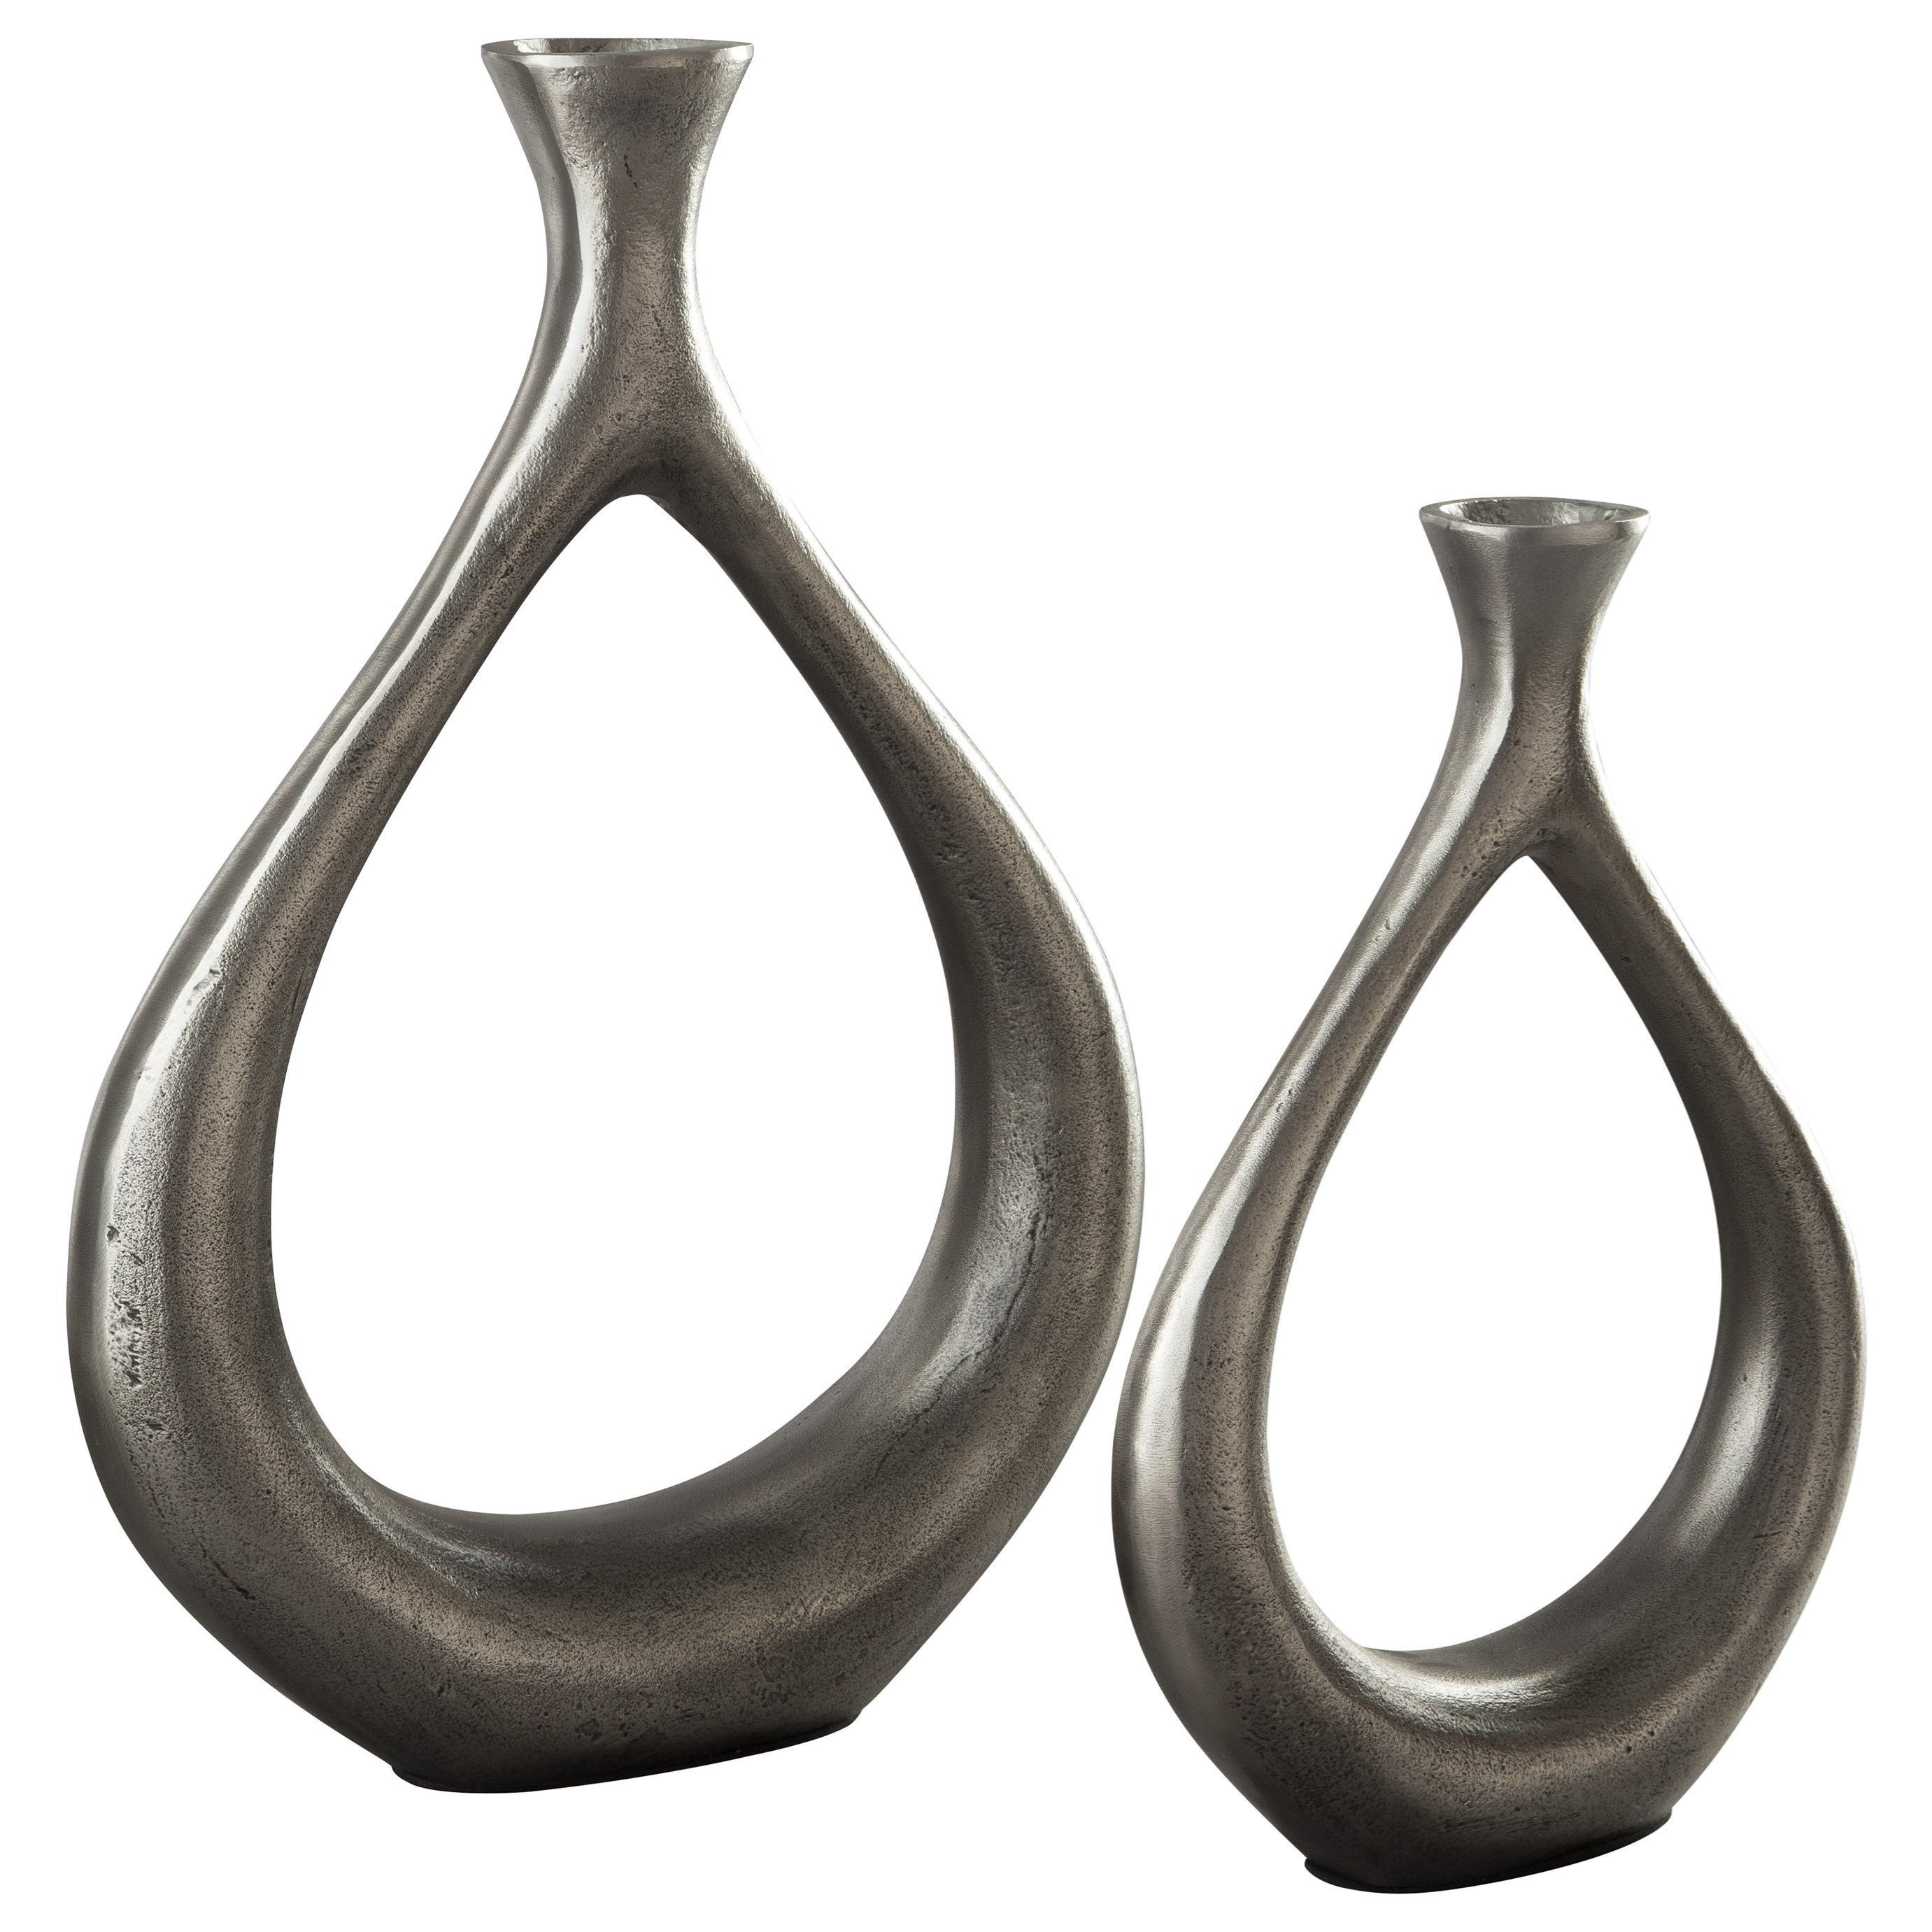 Accents Dimala Antique Silver Finish Vase Set by Signature Design by Ashley at Catalog Outlet